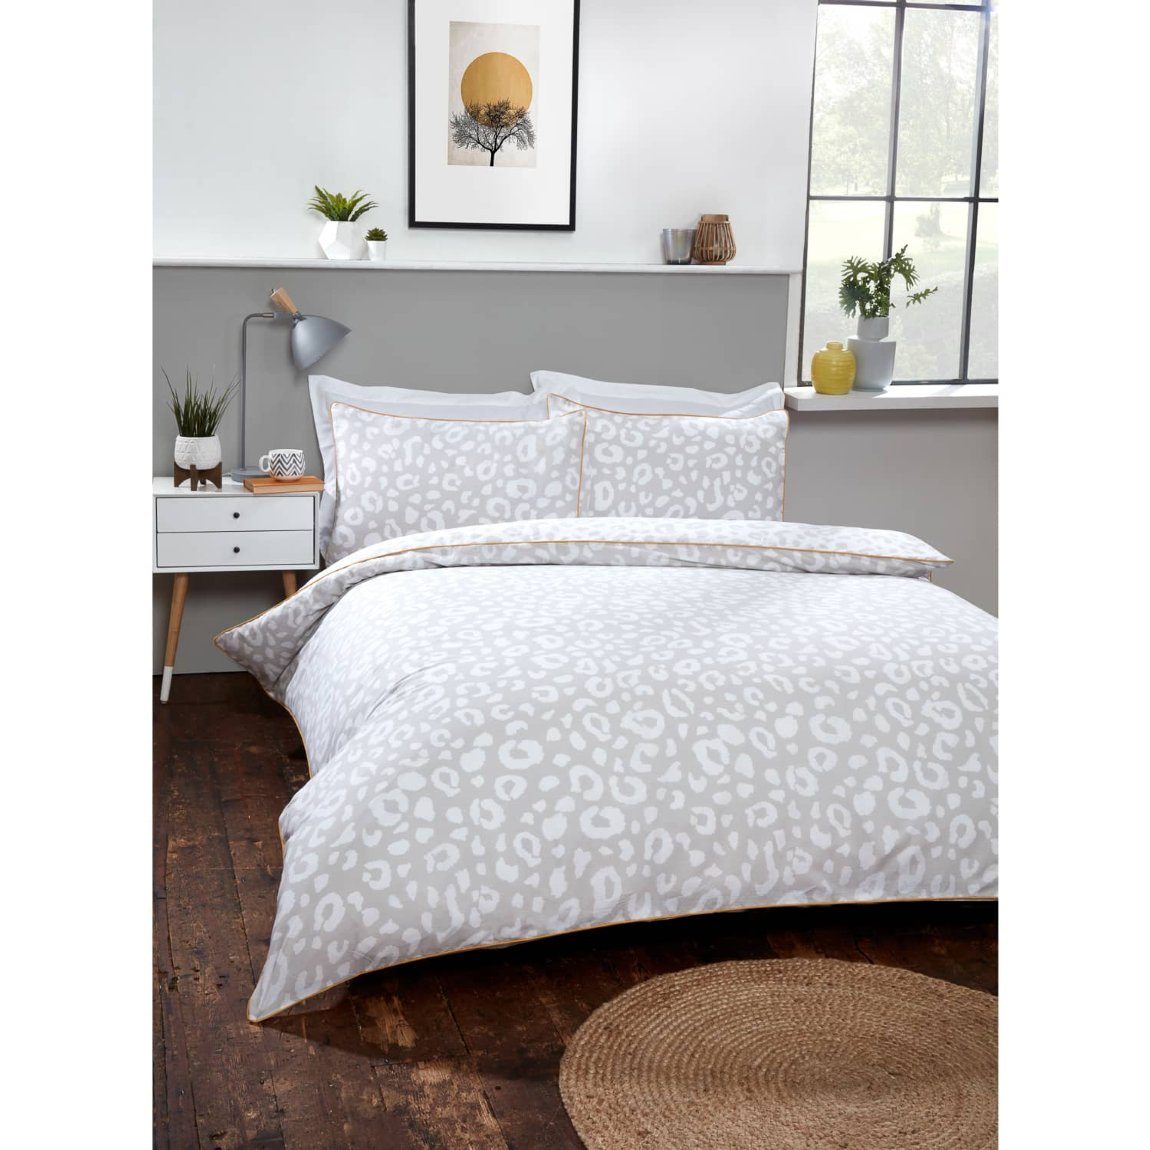 Loft Studio Leopard Double Duvet Set - Natural